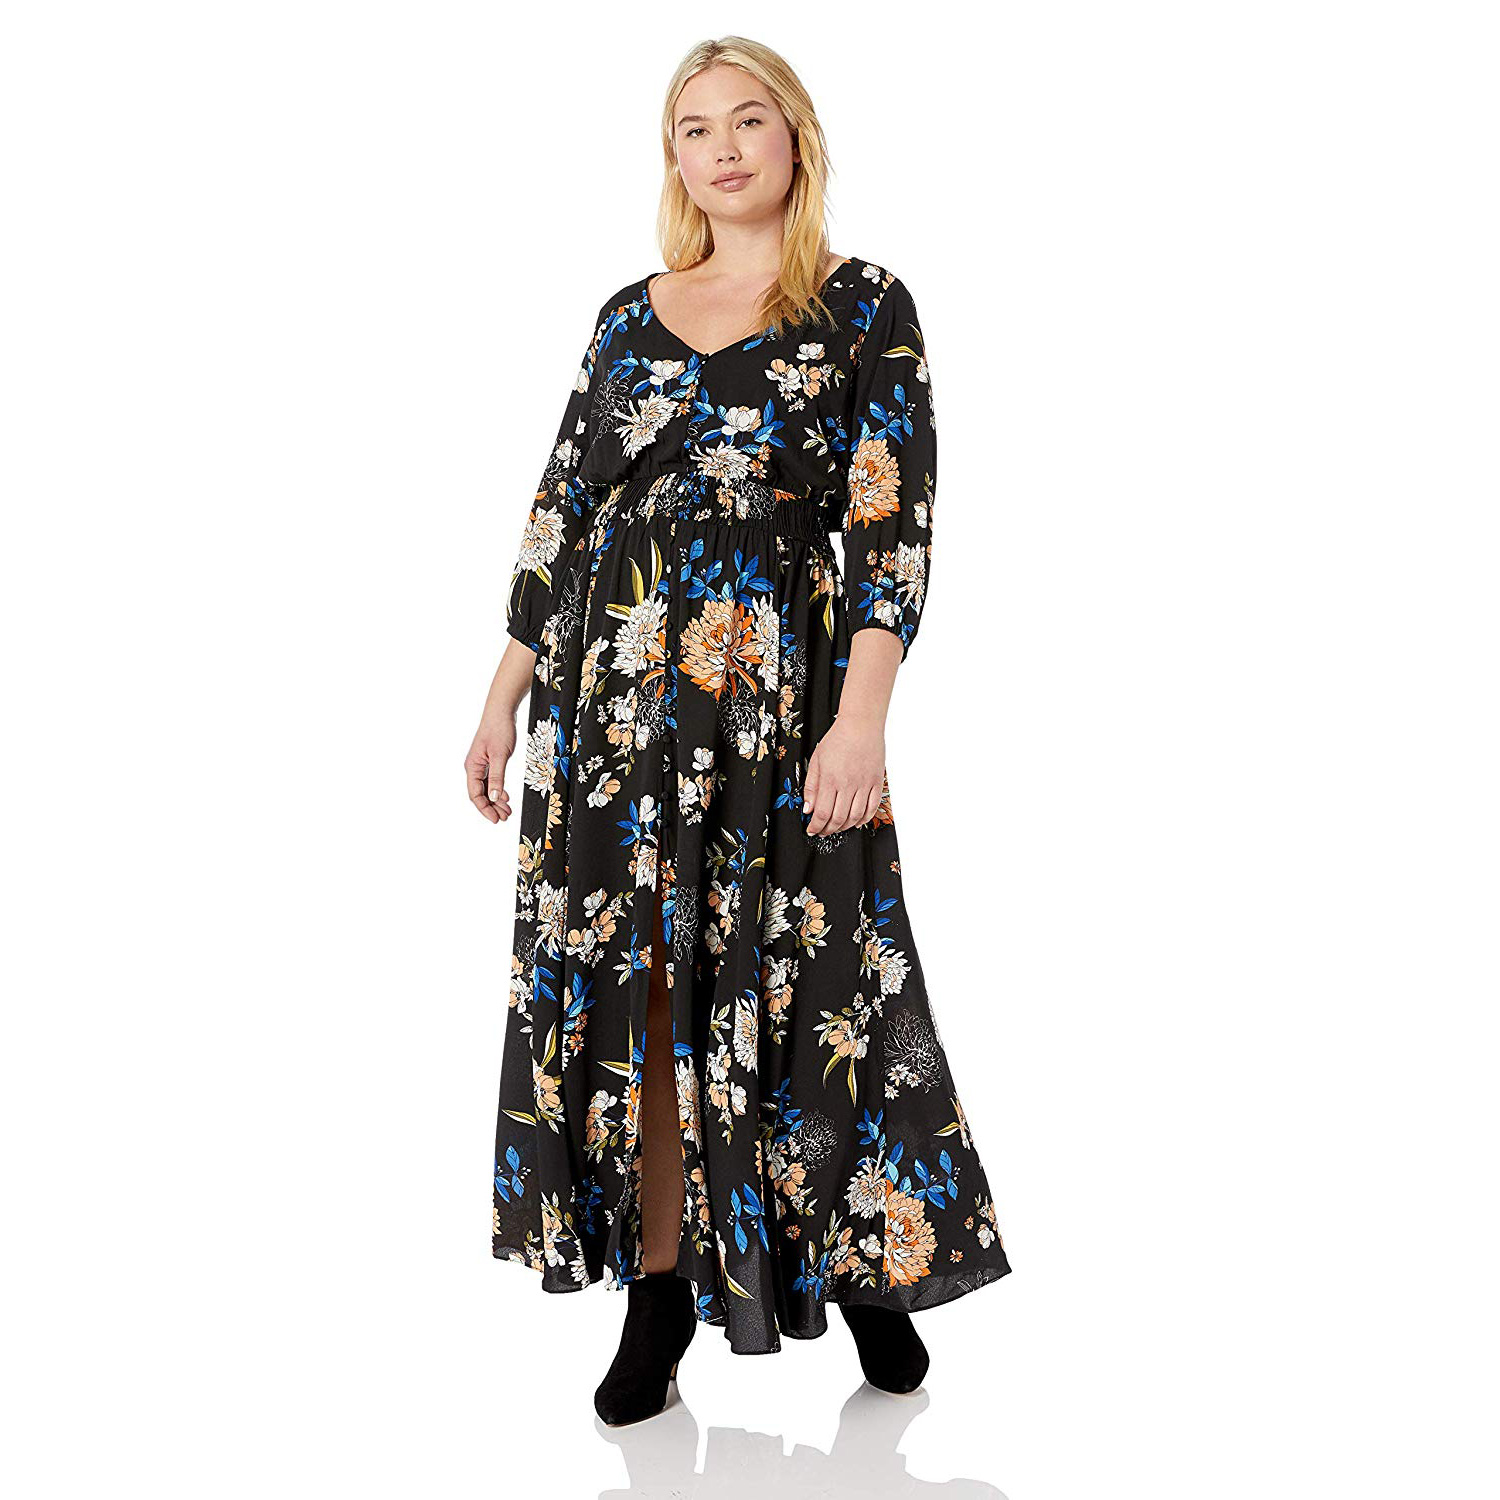 Amazon Fall Dresses Women City Chic Women's Apparel Women's Plus Size 3/4 Sleeve Printed Maxi Dress